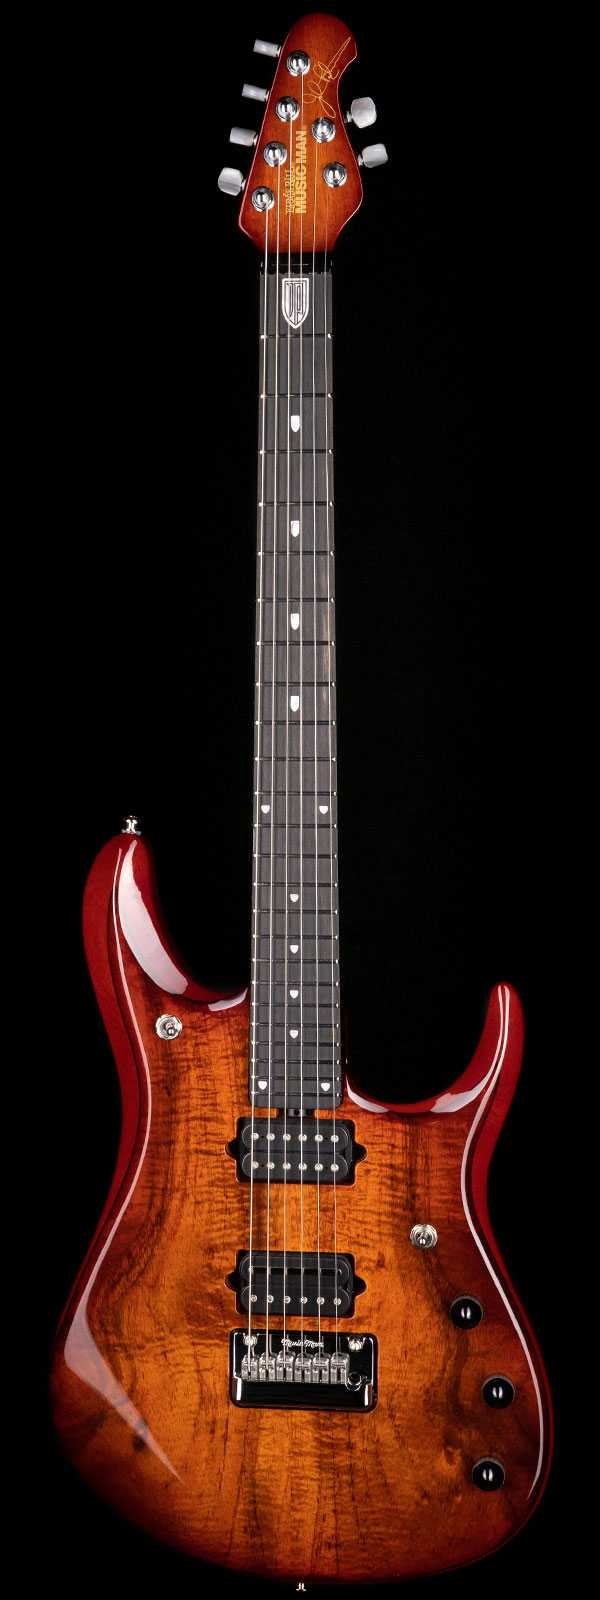 Ernie Ball Music Man John Petrucci Figured Koa Top Island Burst